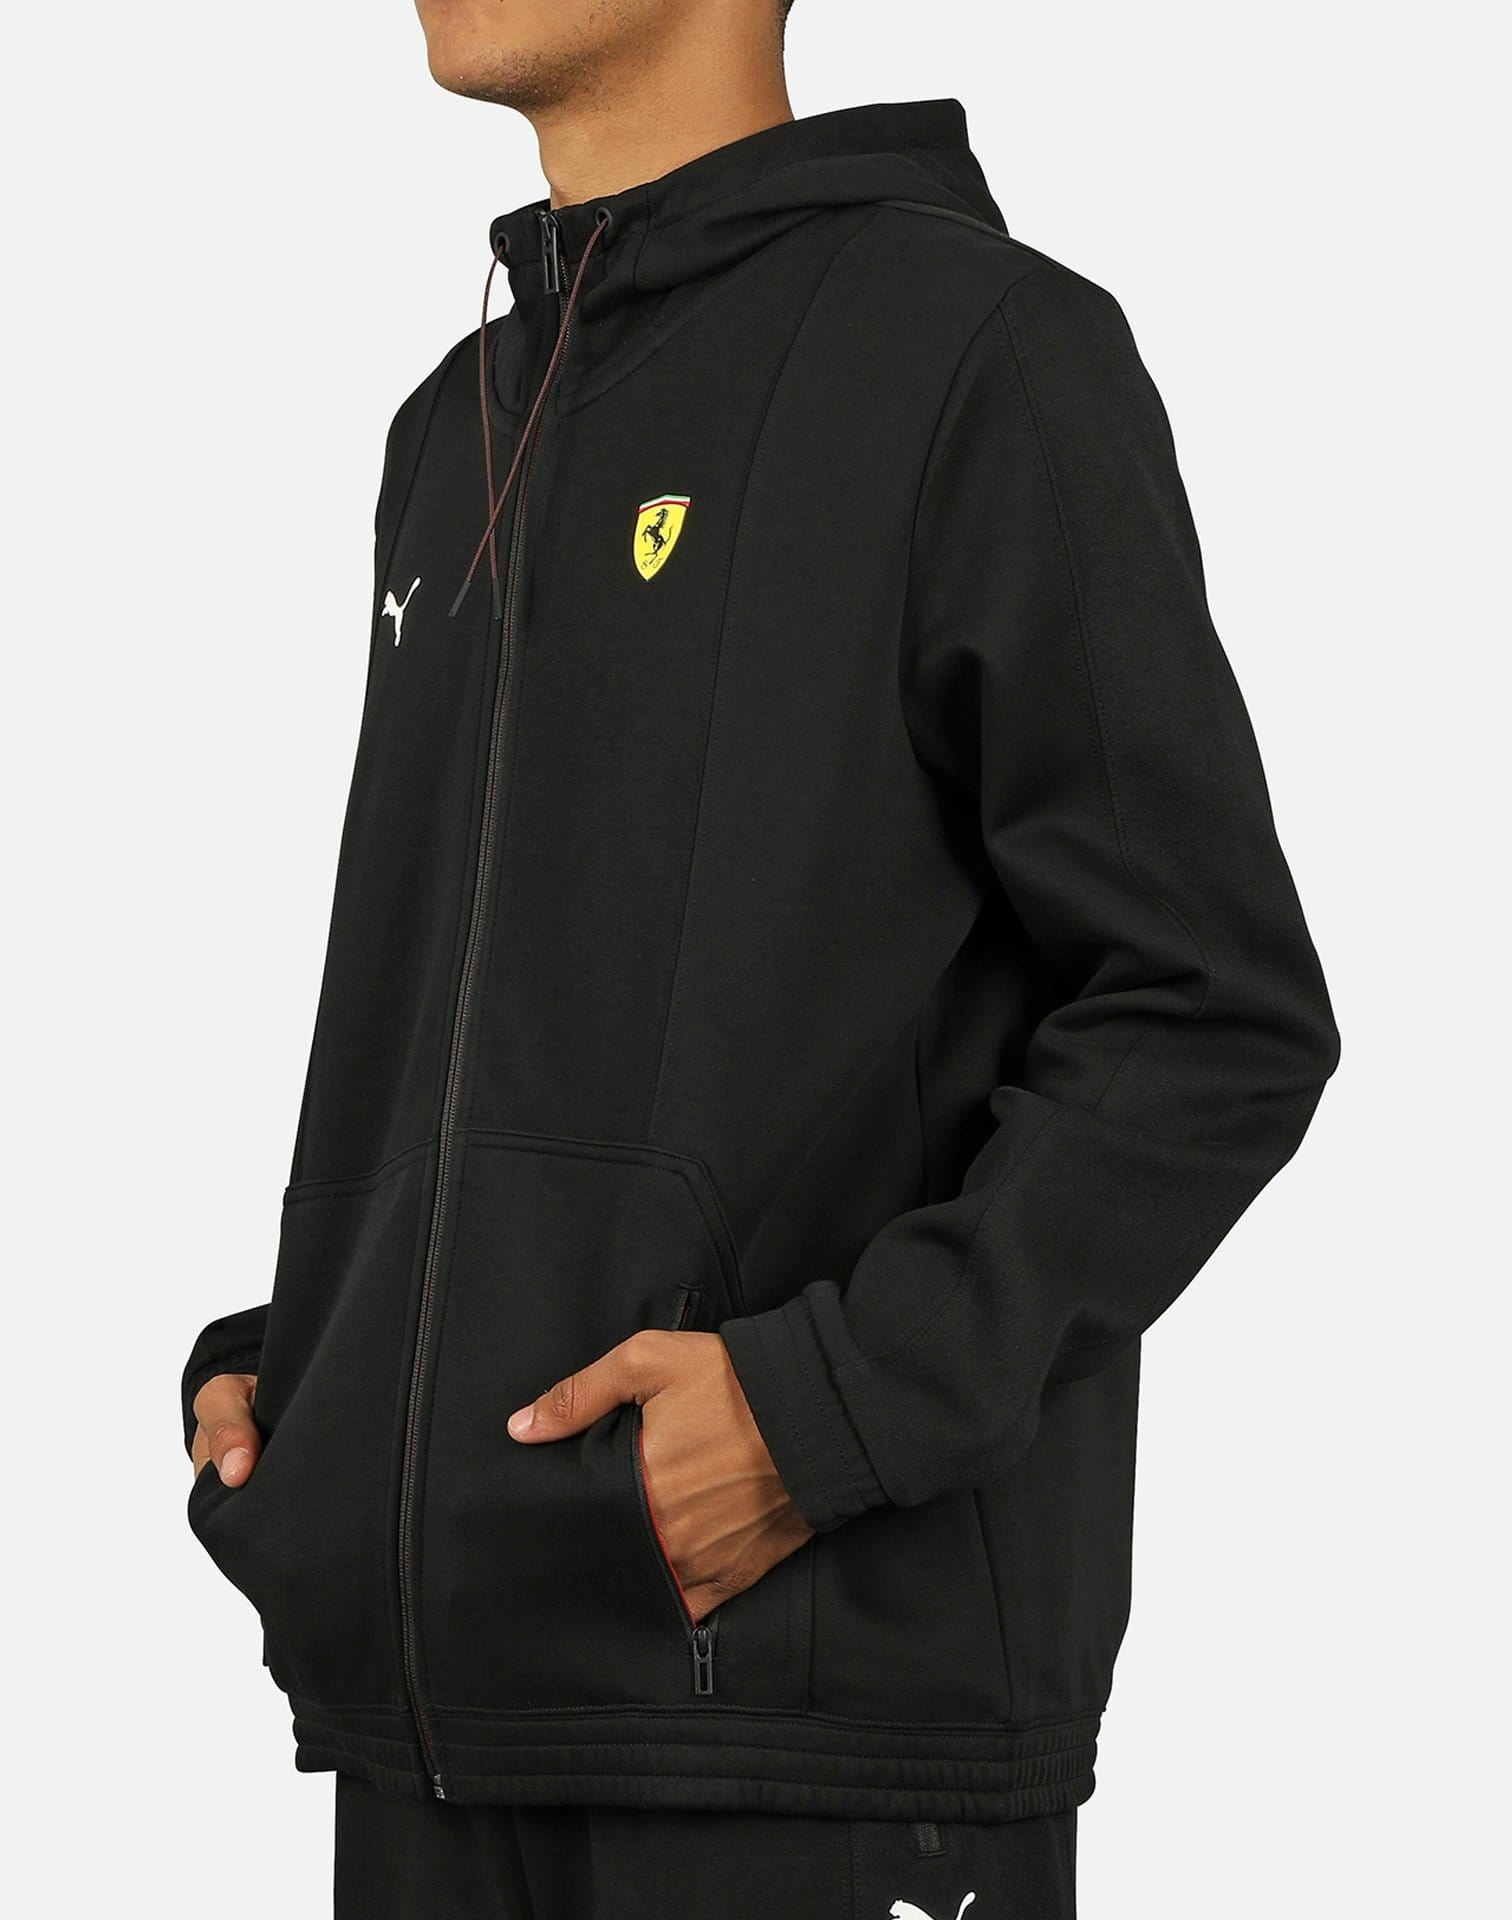 PUMA Men's Ferrari Hooded Sweat Jacket